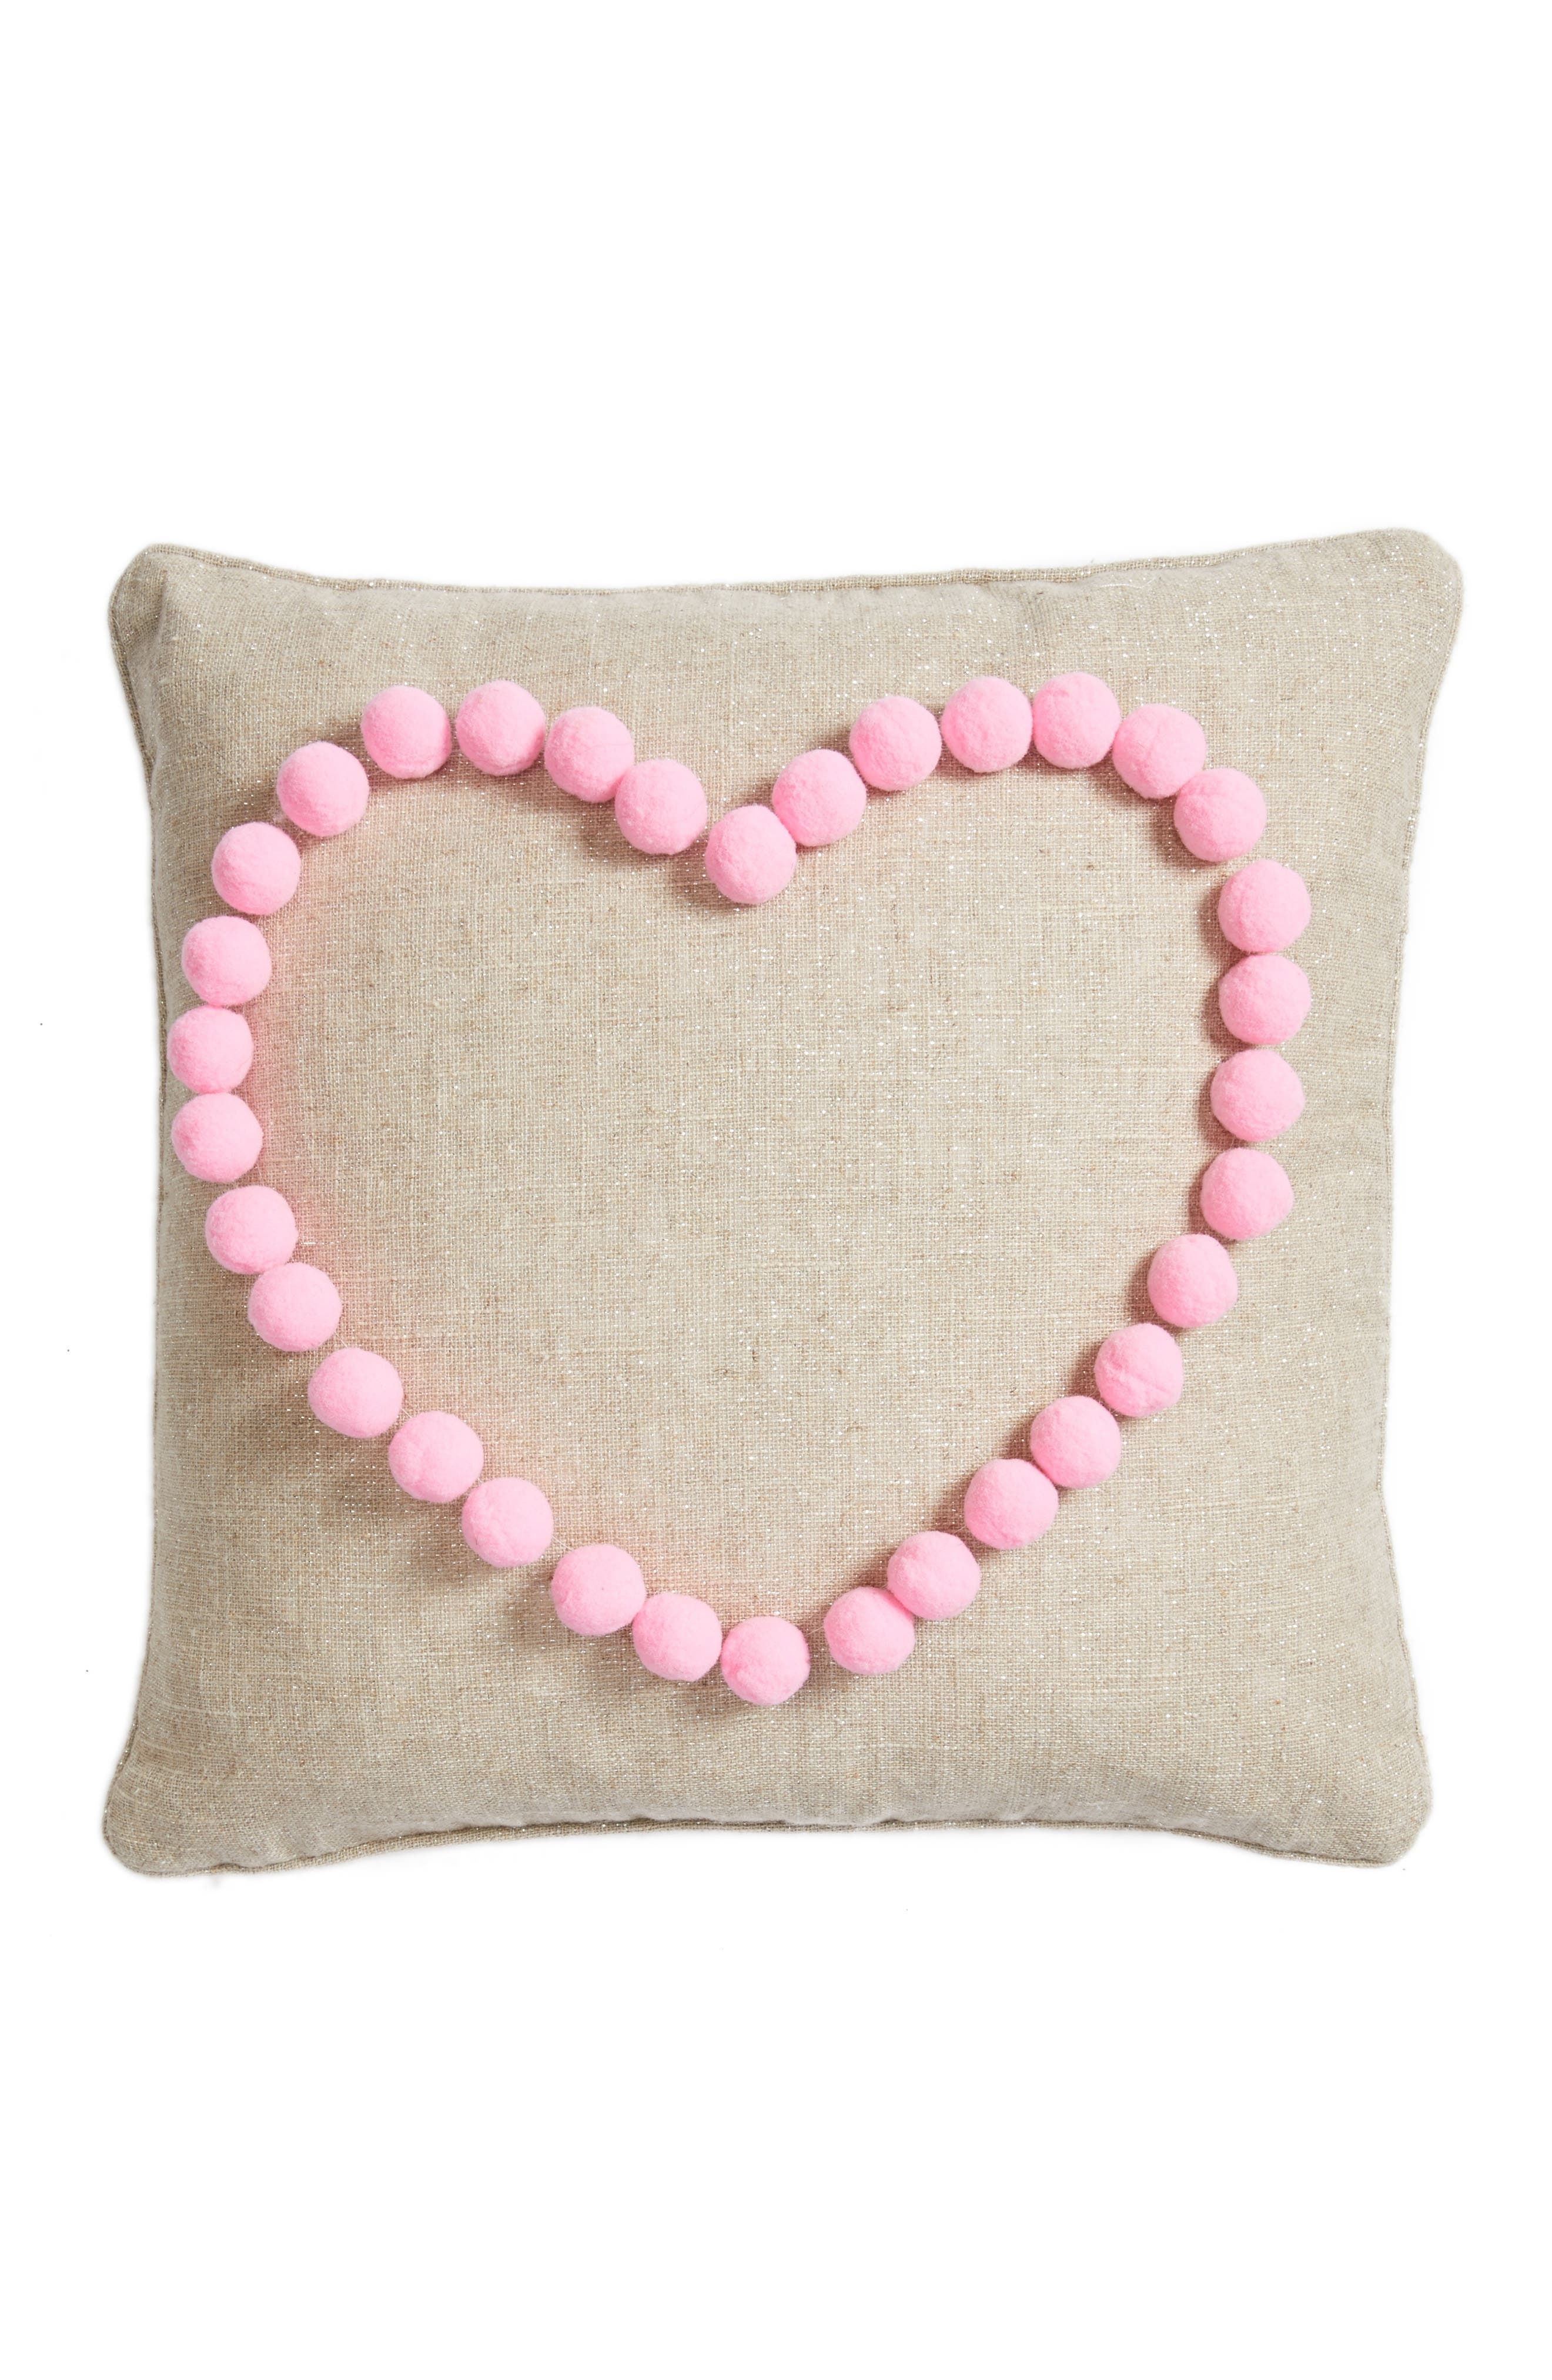 Pompom Heart Accent Pillow,                         Main,                         color, Natural